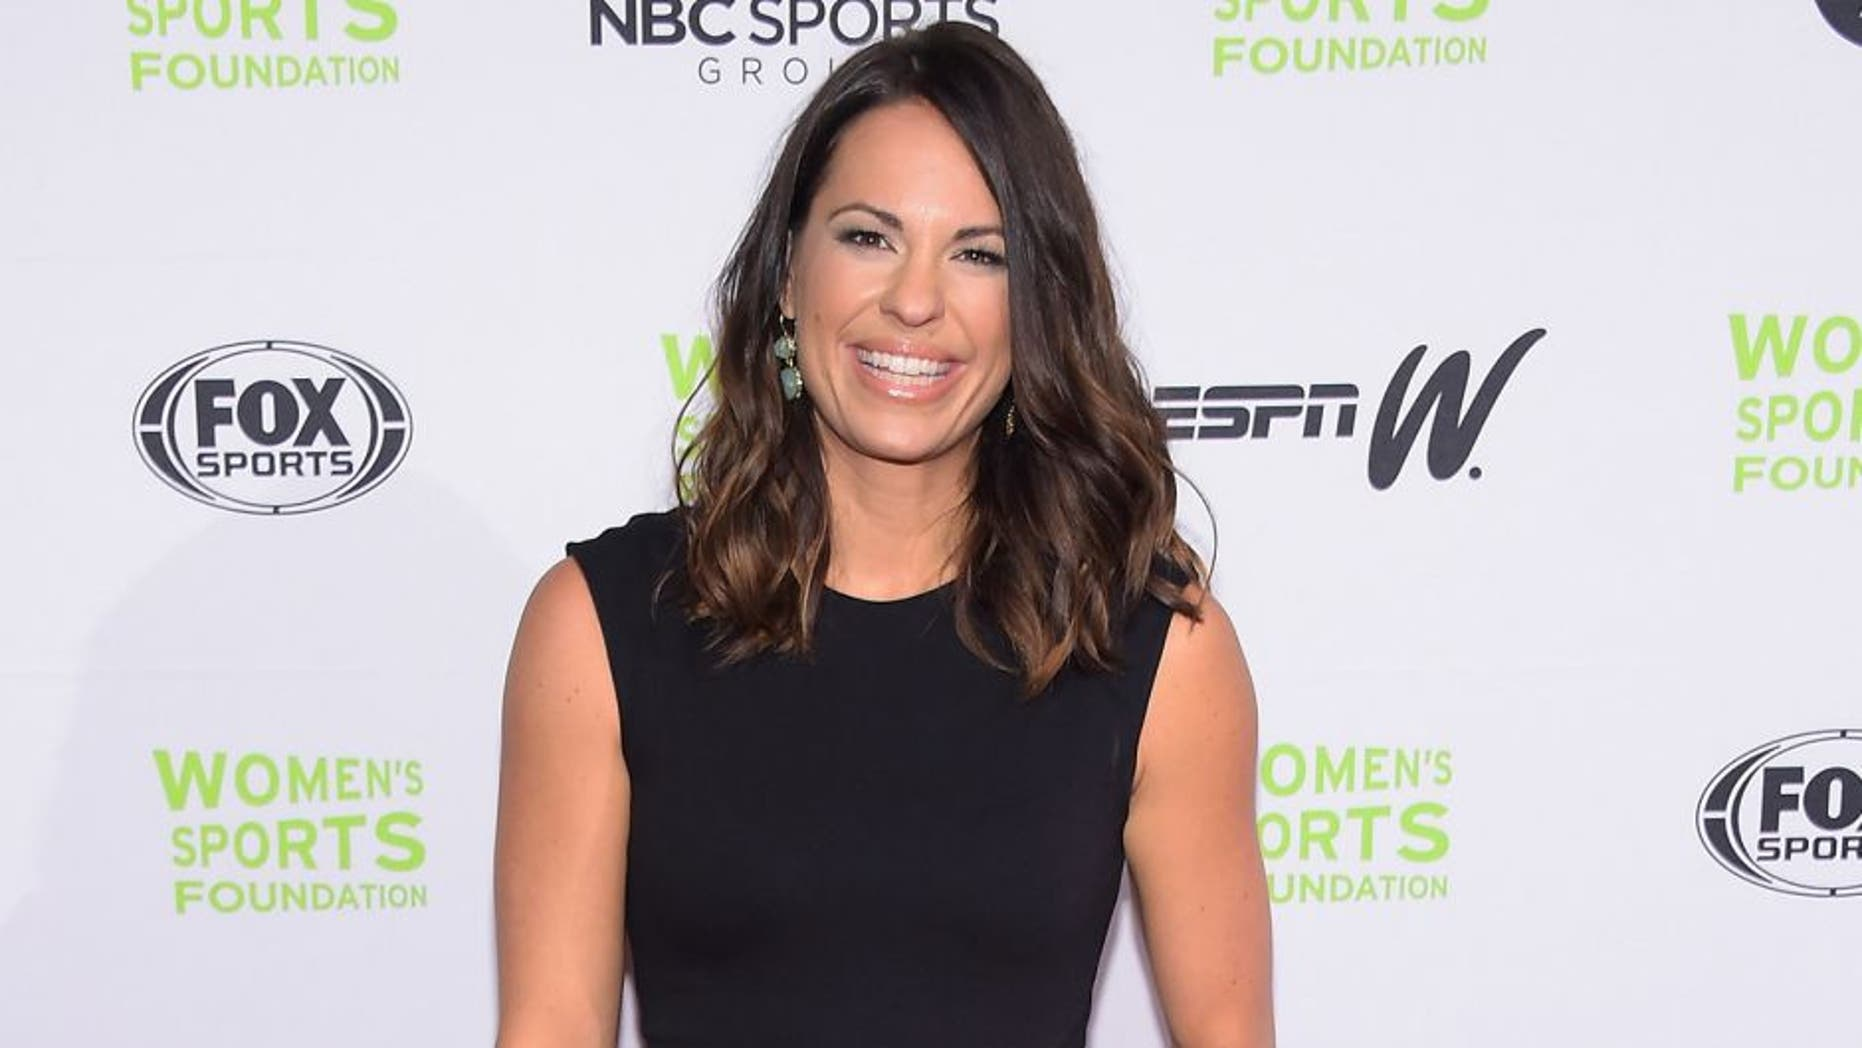 NEW YORK, NY - OCTOBER 15: Softbal player Jessica Mendoza attends the Women's Sports Foundation's 35th Annual Salute to Women In Sports awards, a celebration and a fundraiser to ensure more girls and women have access to sports, at Cipriani Wall Street on October 15, 2014 in New York City. (Photo by Michael Loccisano/Getty Images)